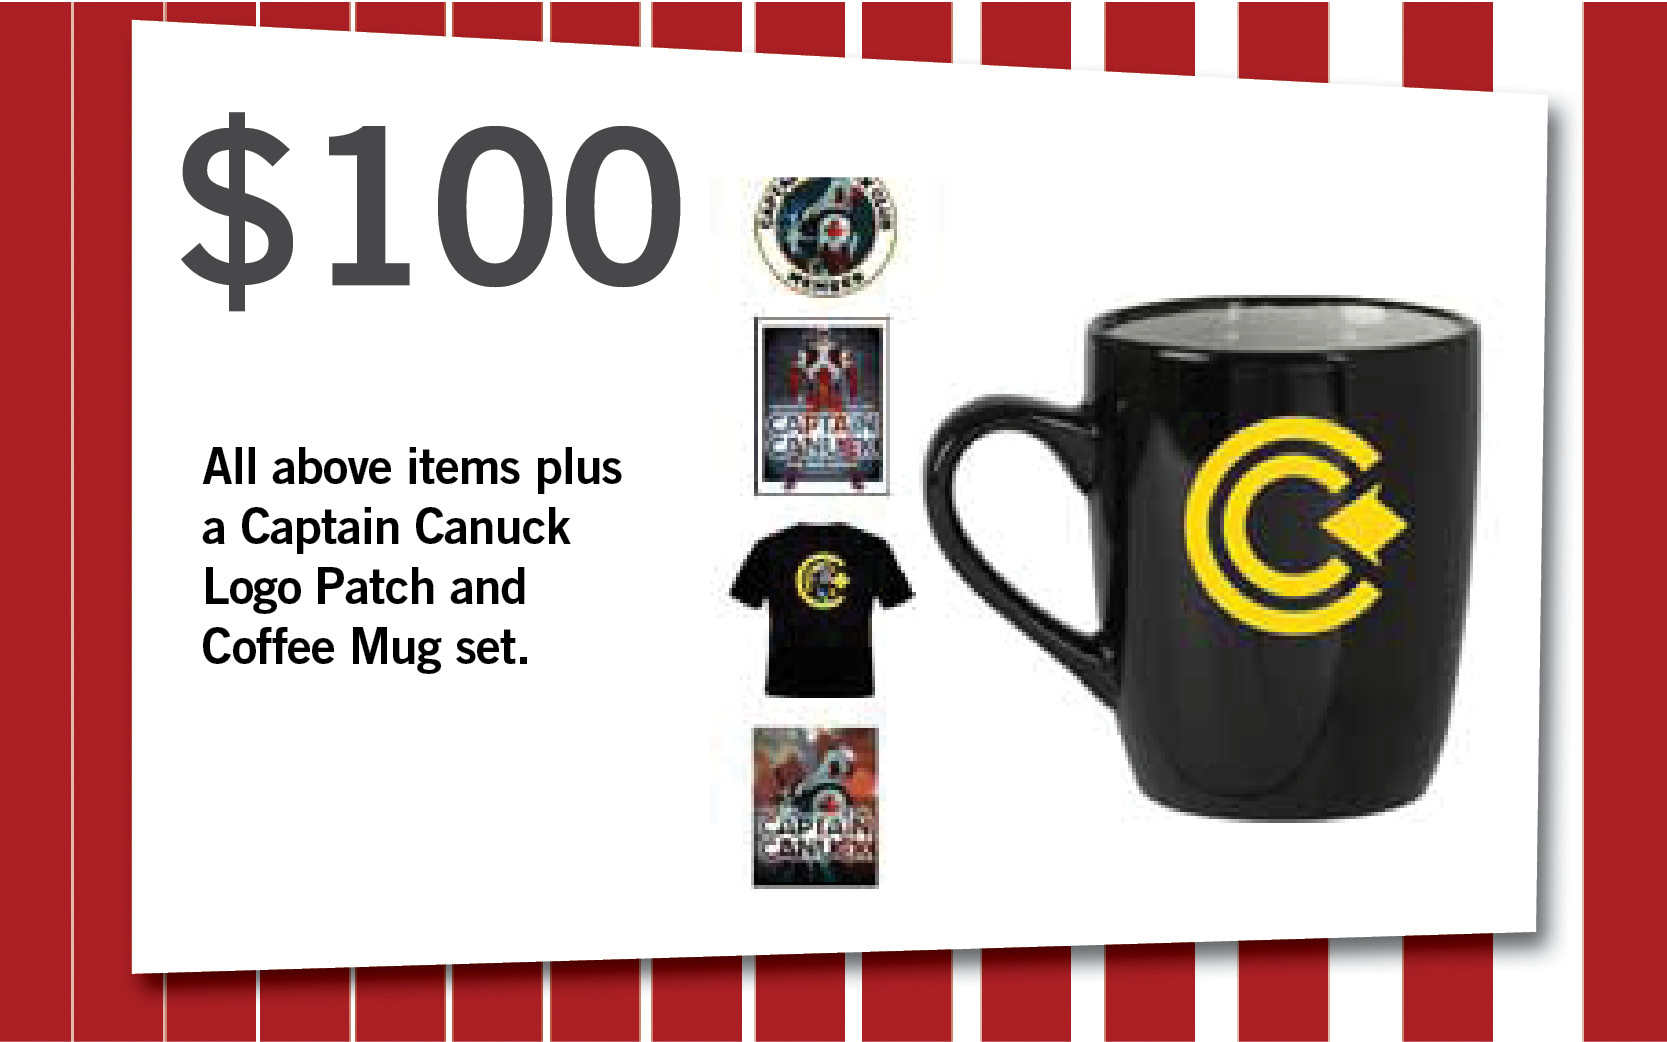 All above items plus a Captain Canuck Logo Patch and Coffee Mug set.